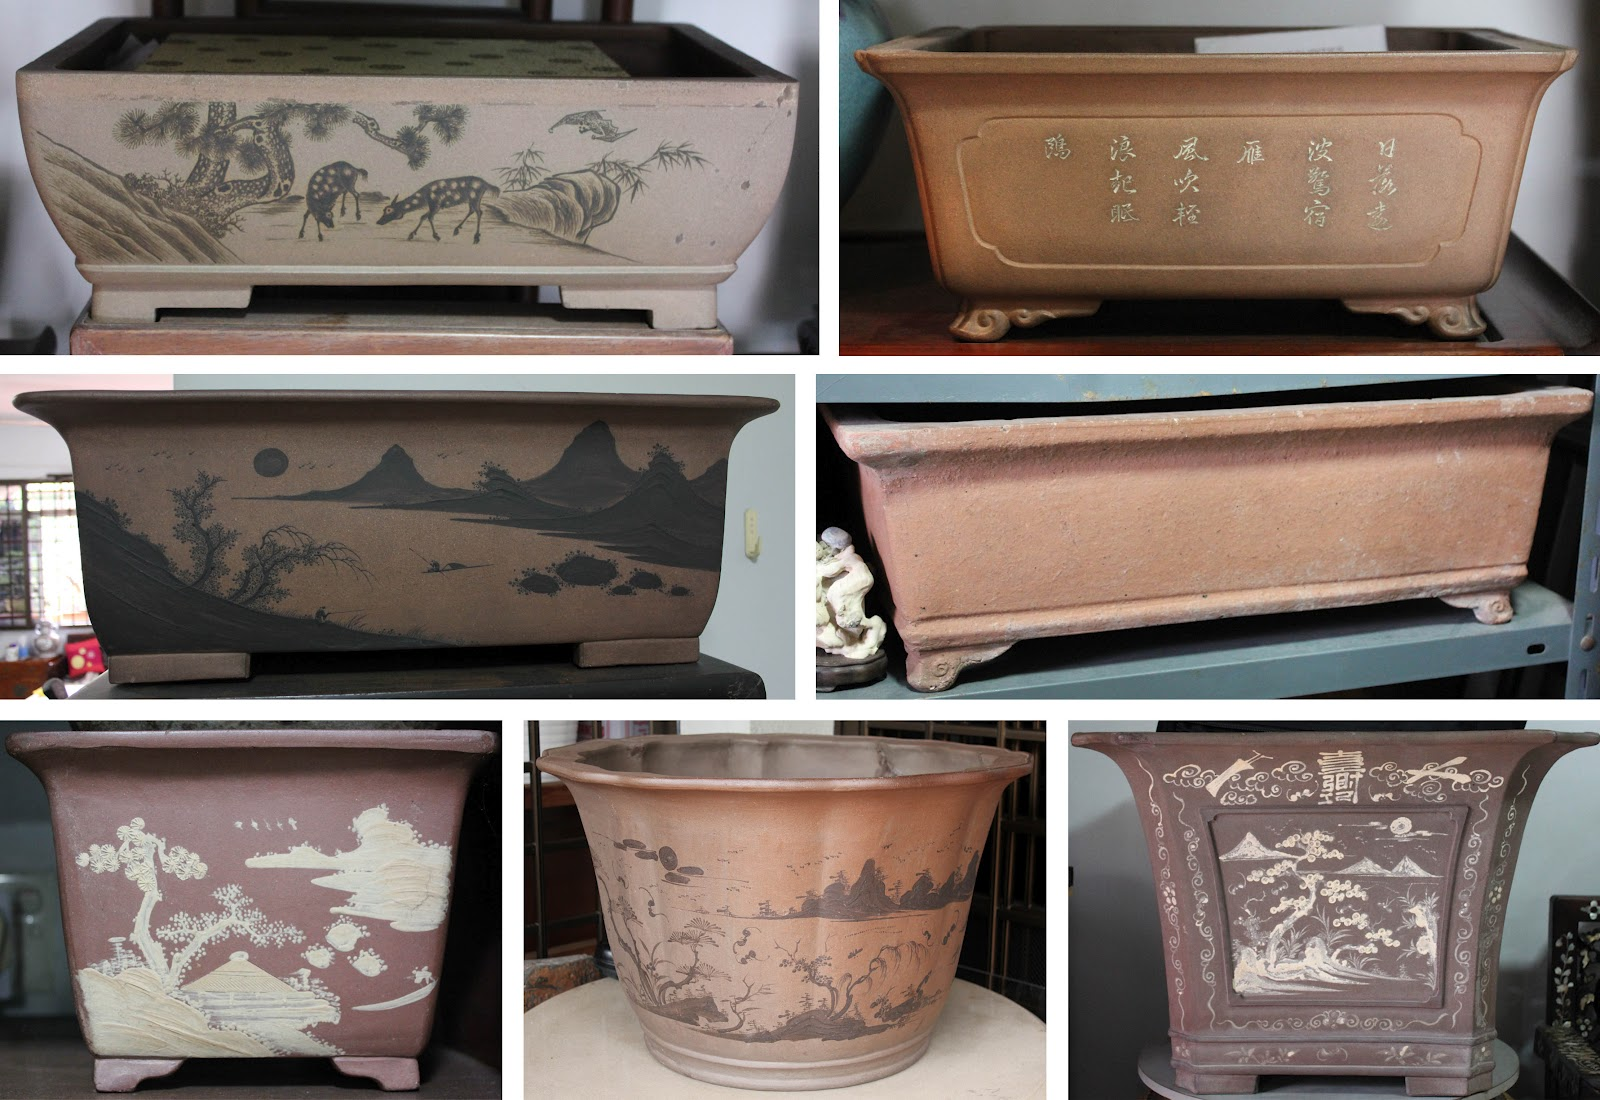 Kigawa39s Bonsai Blog Vintage And Antique Bonsai Pots In Singapore